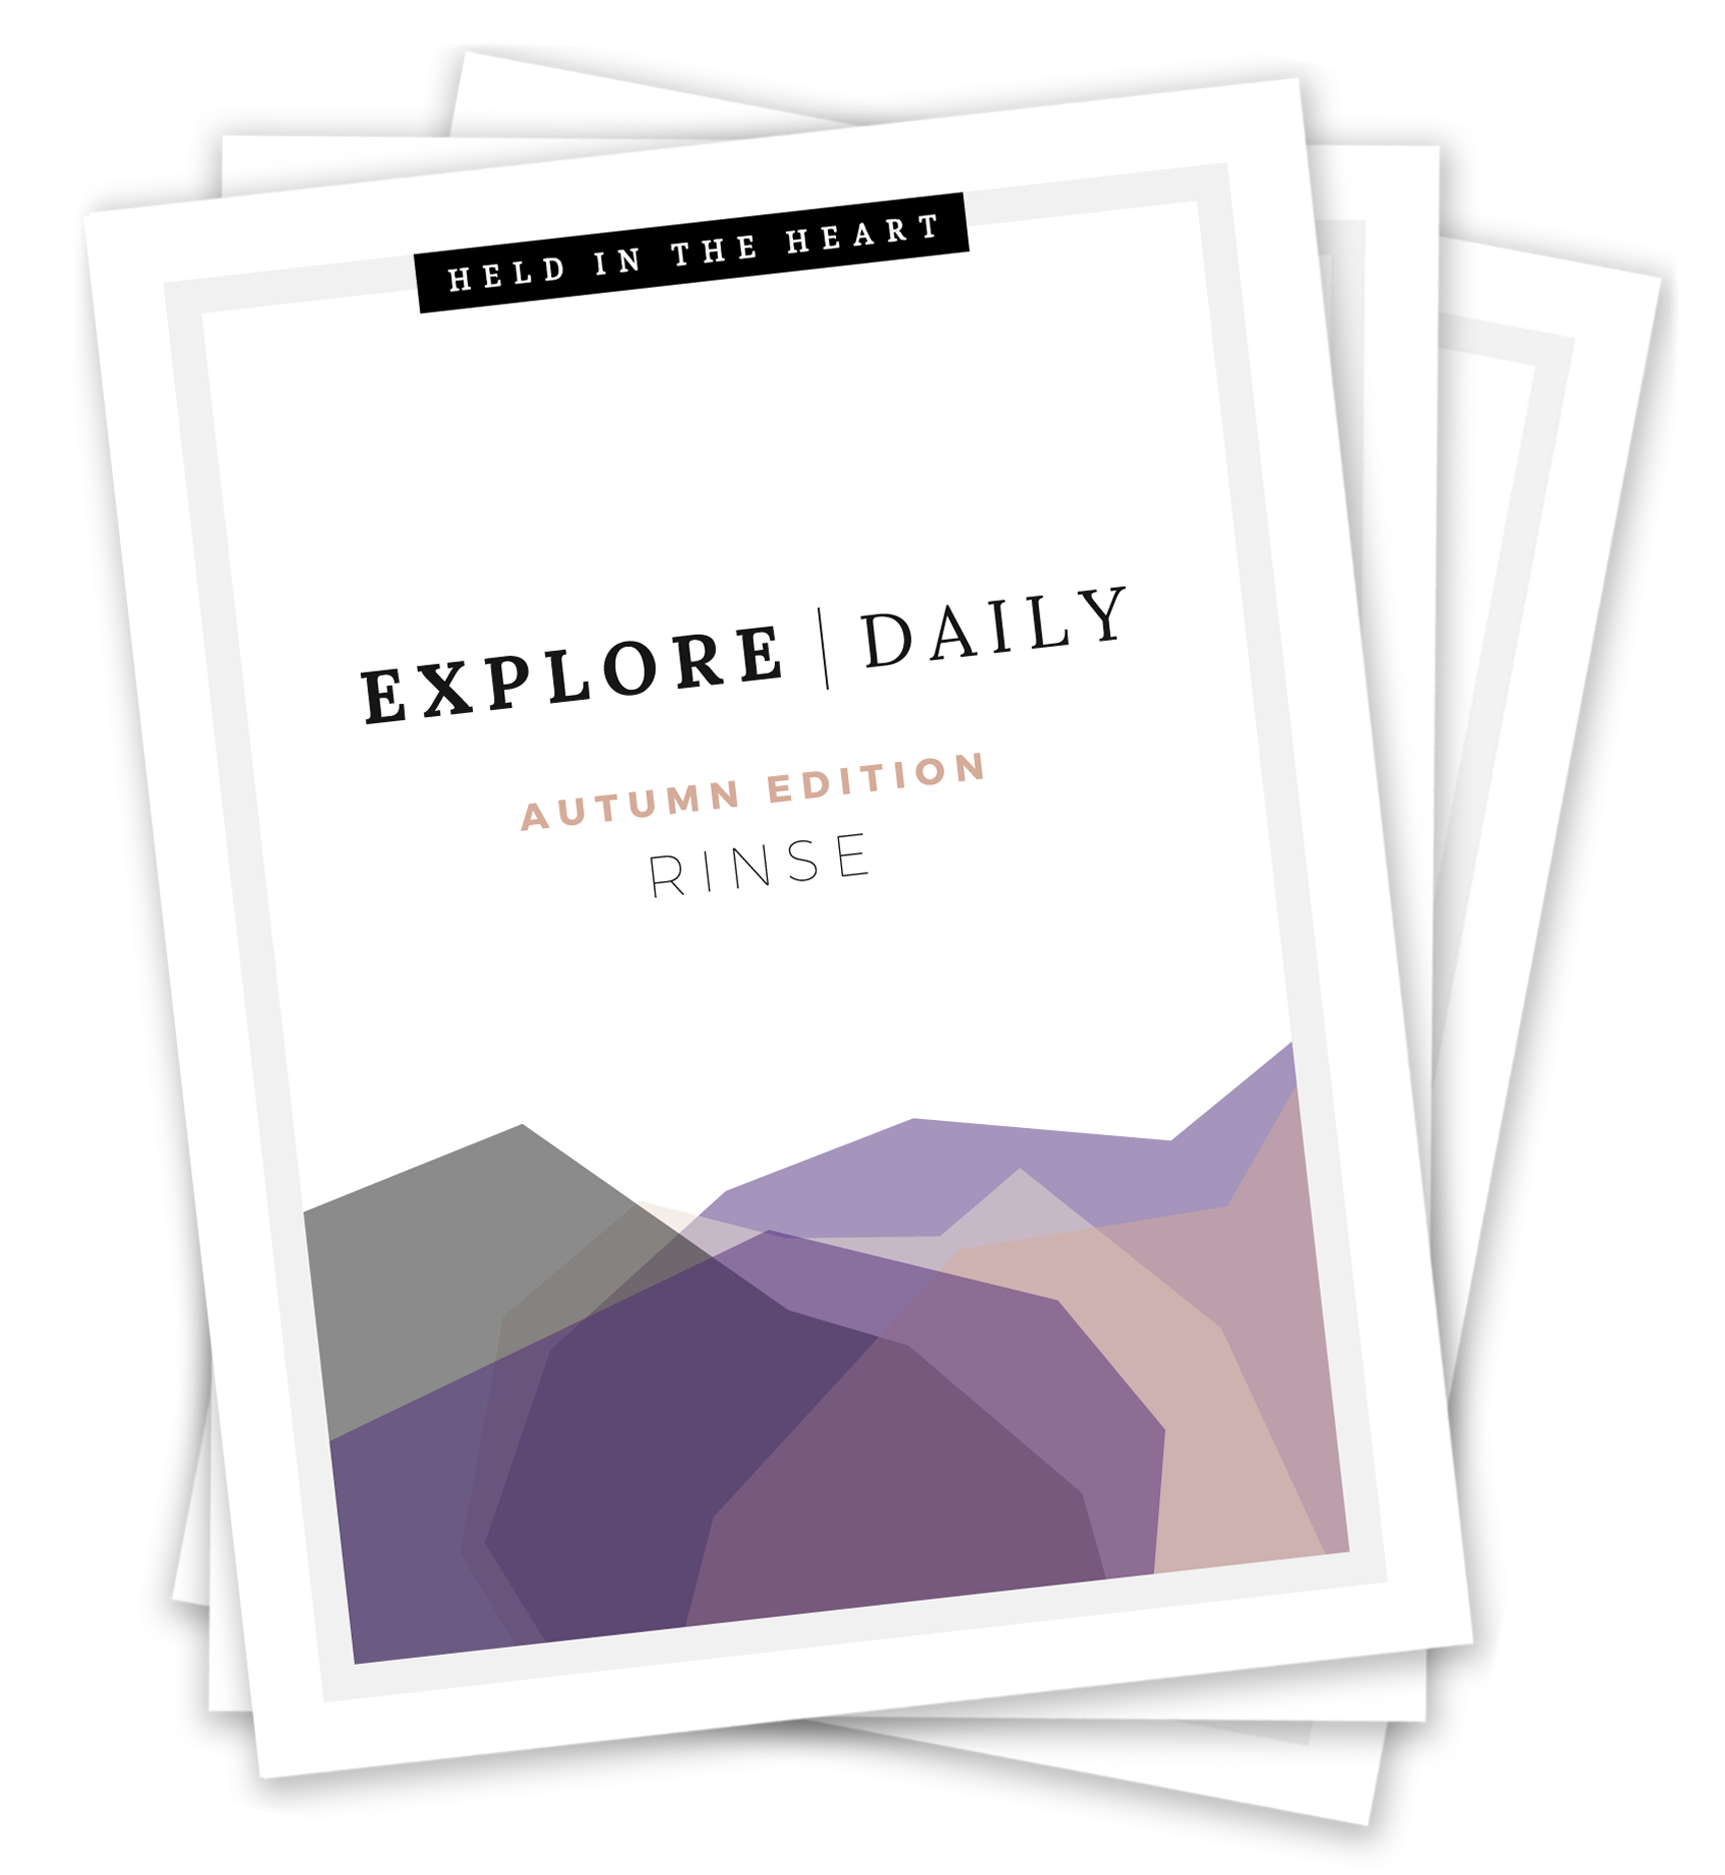 EXPLORE-Daily-Autumn_RINSE-Edition.png